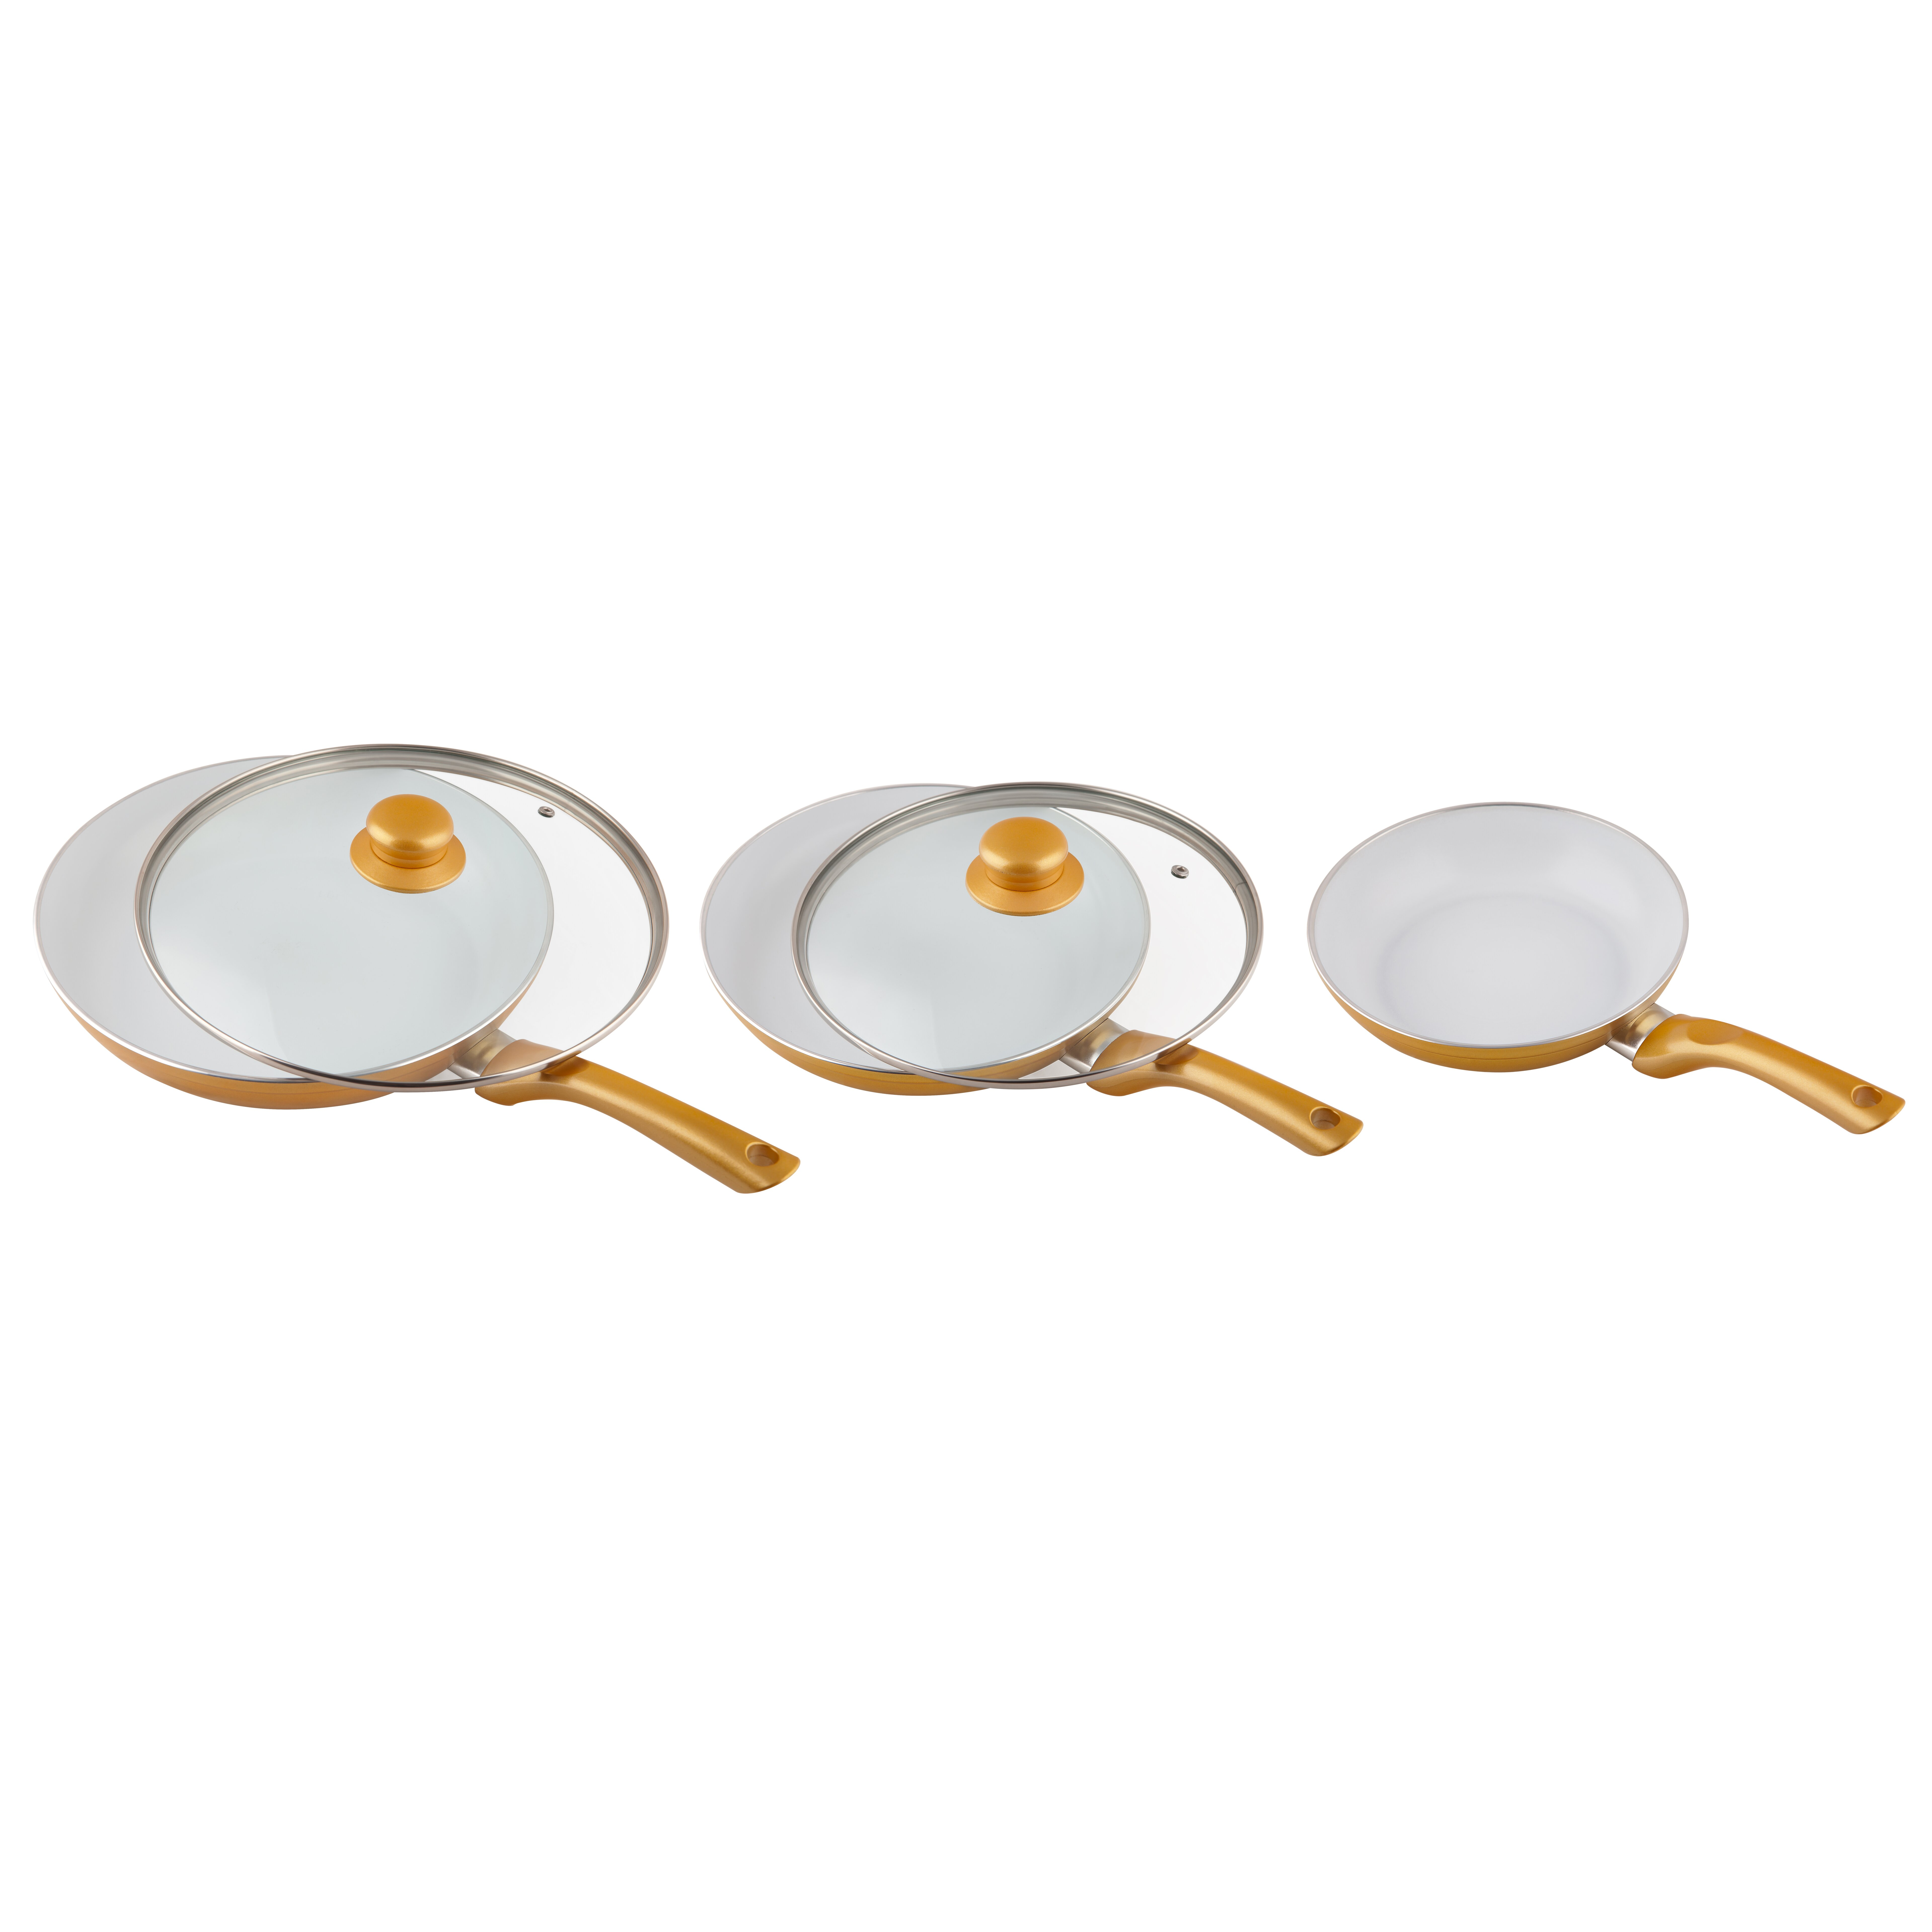 Ceramicore 3 Piece Induction Compatible Non Stick Frying